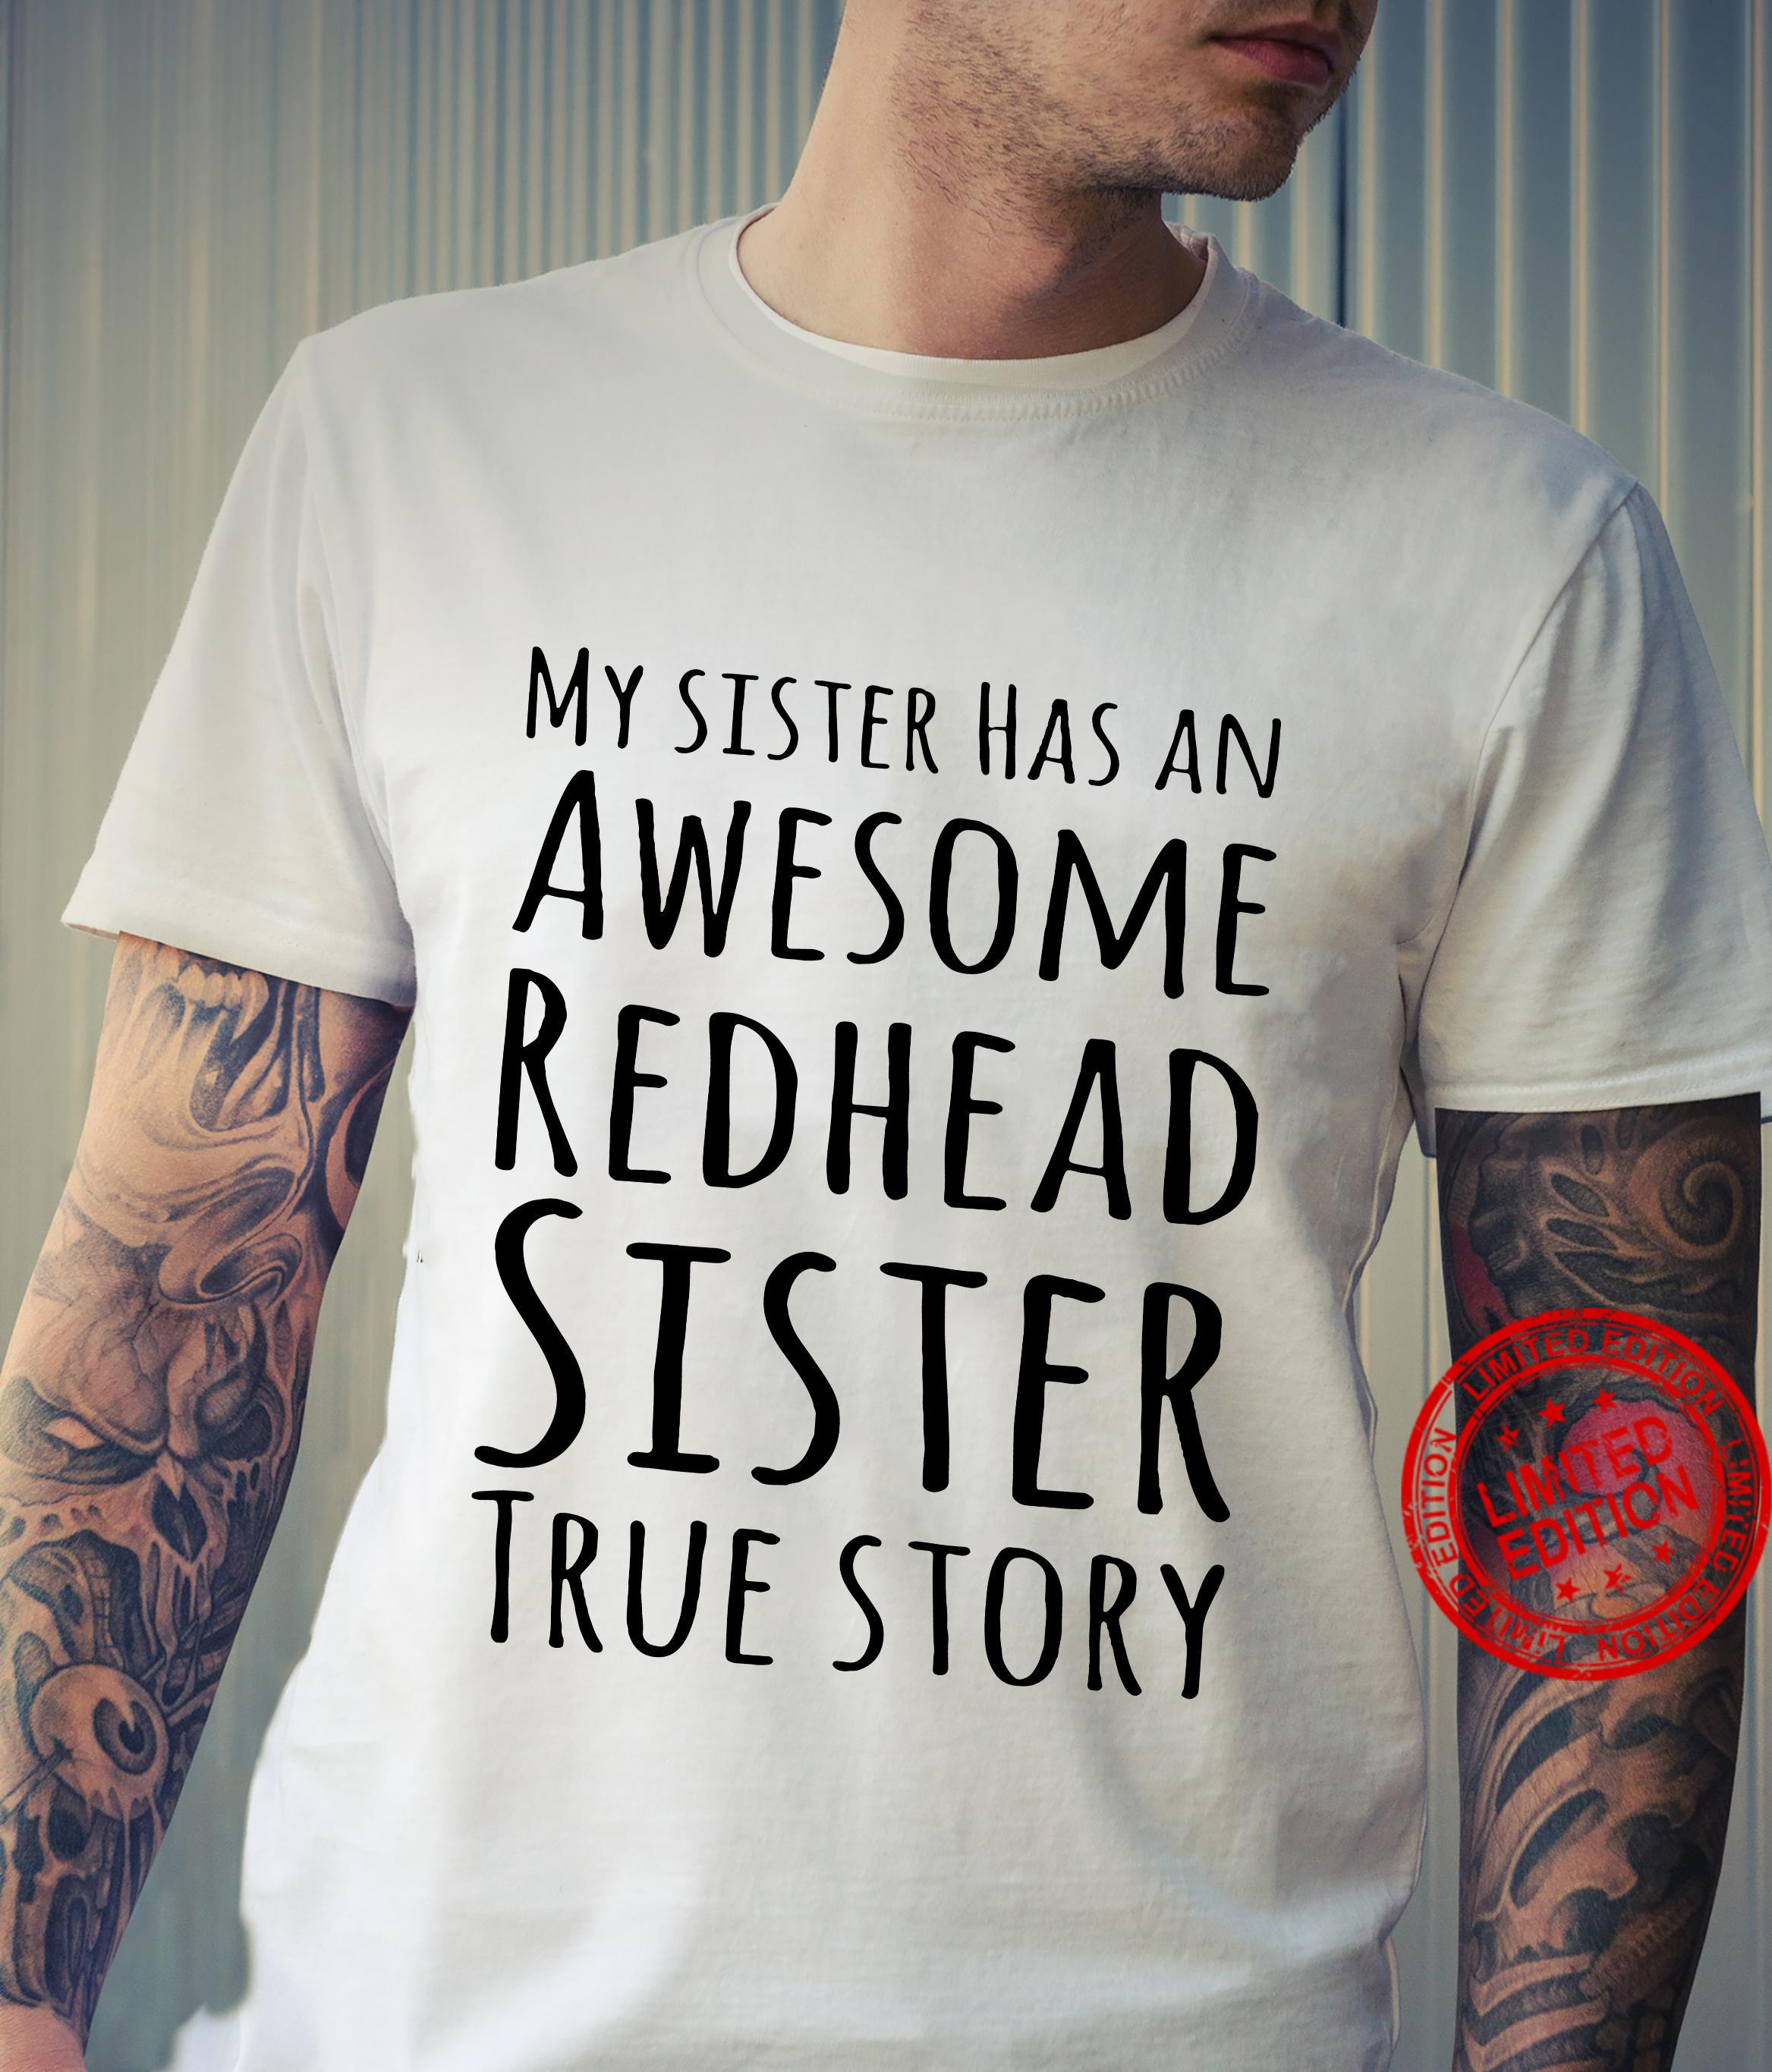 My sister has an awesome redhead sister true story shirt